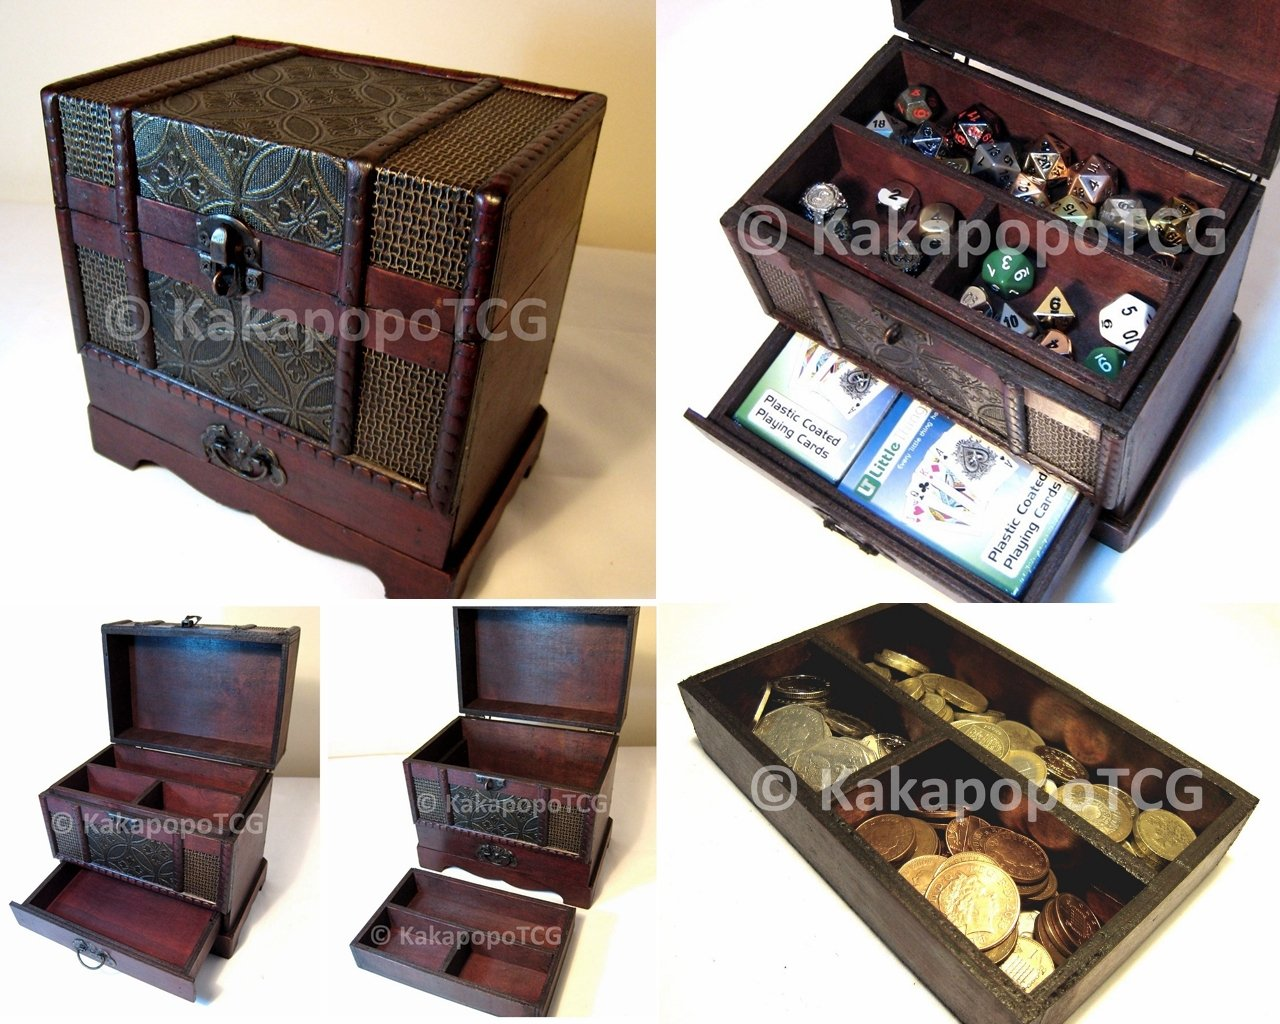 C2 Wooden Chest with drawer for collectible Fantasy Coins Card Games Dice Counter Deck of Cards Table Top Role Playing Jewelry Box Tabletop DND KakapopoTCG